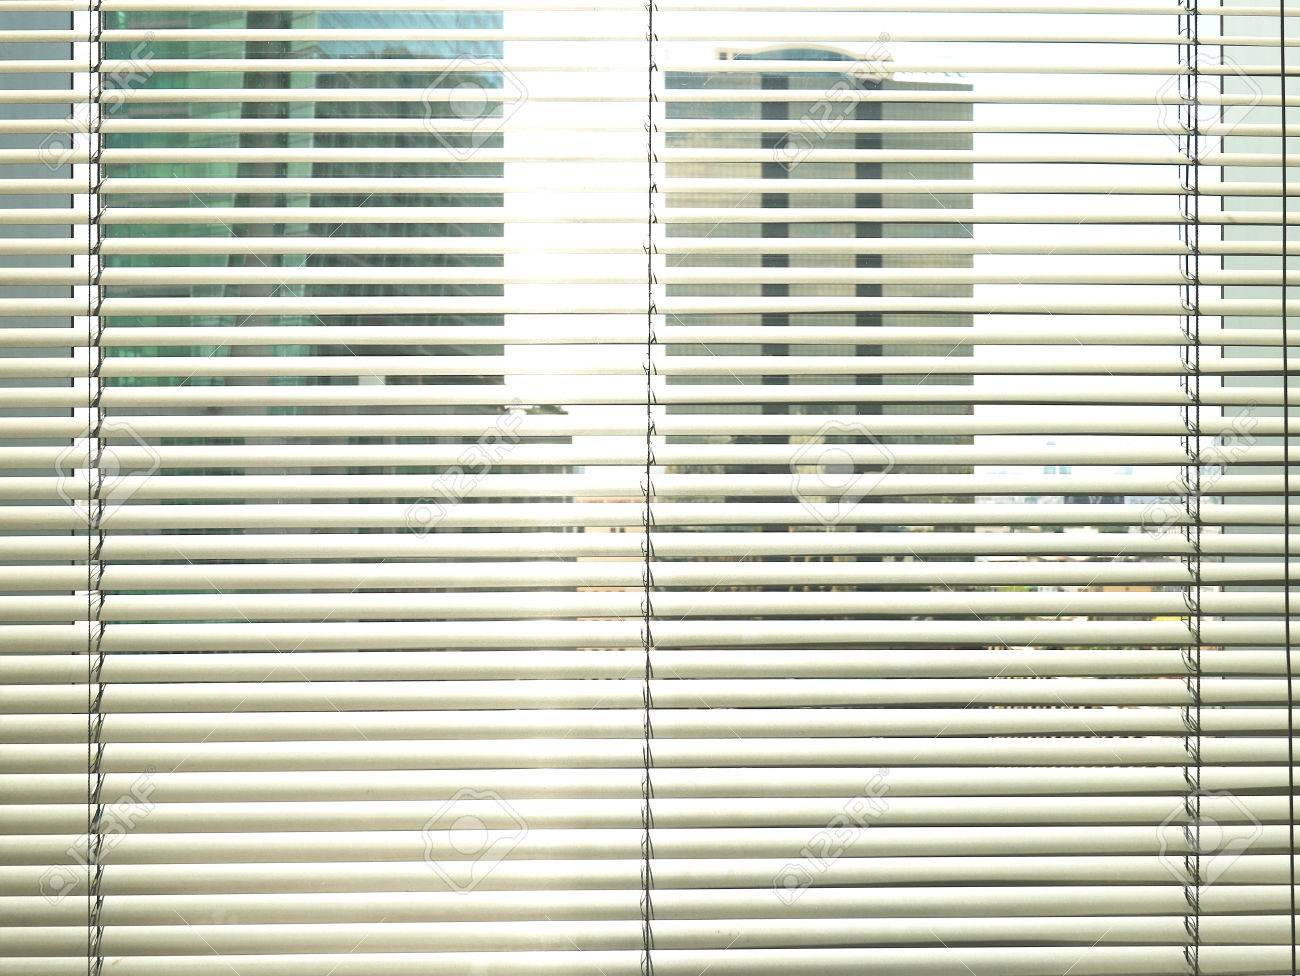 Window Grey Metallic Jalusie Sunblinds Background Office Stock Photo Picture And Royalty Free Image Image 65208839